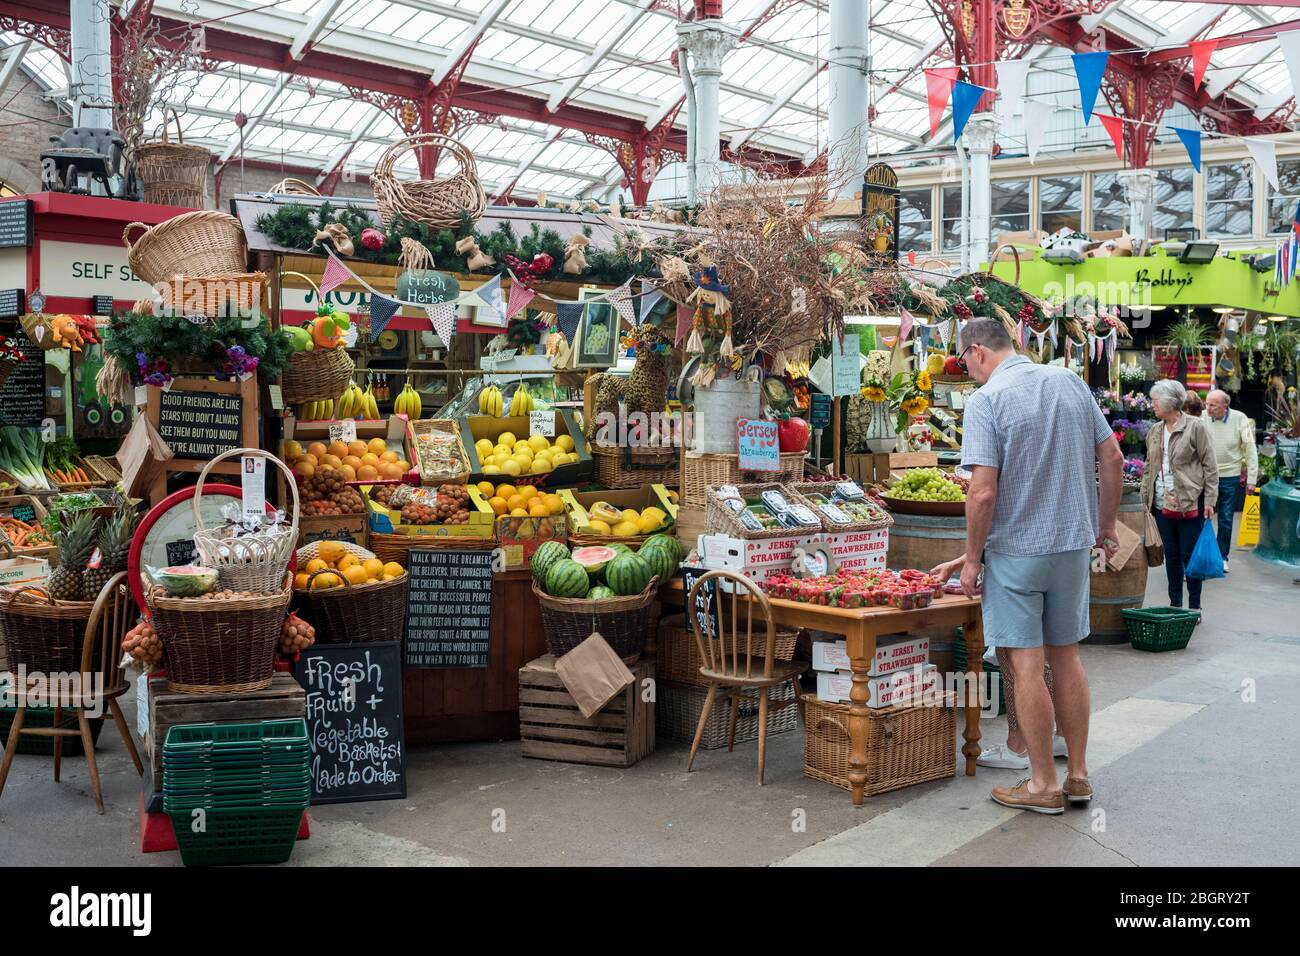 Fruit and other items on sale at St Helier Central Market in historic Victorian market hall, in Jersey, Channel Isles Stock Photo